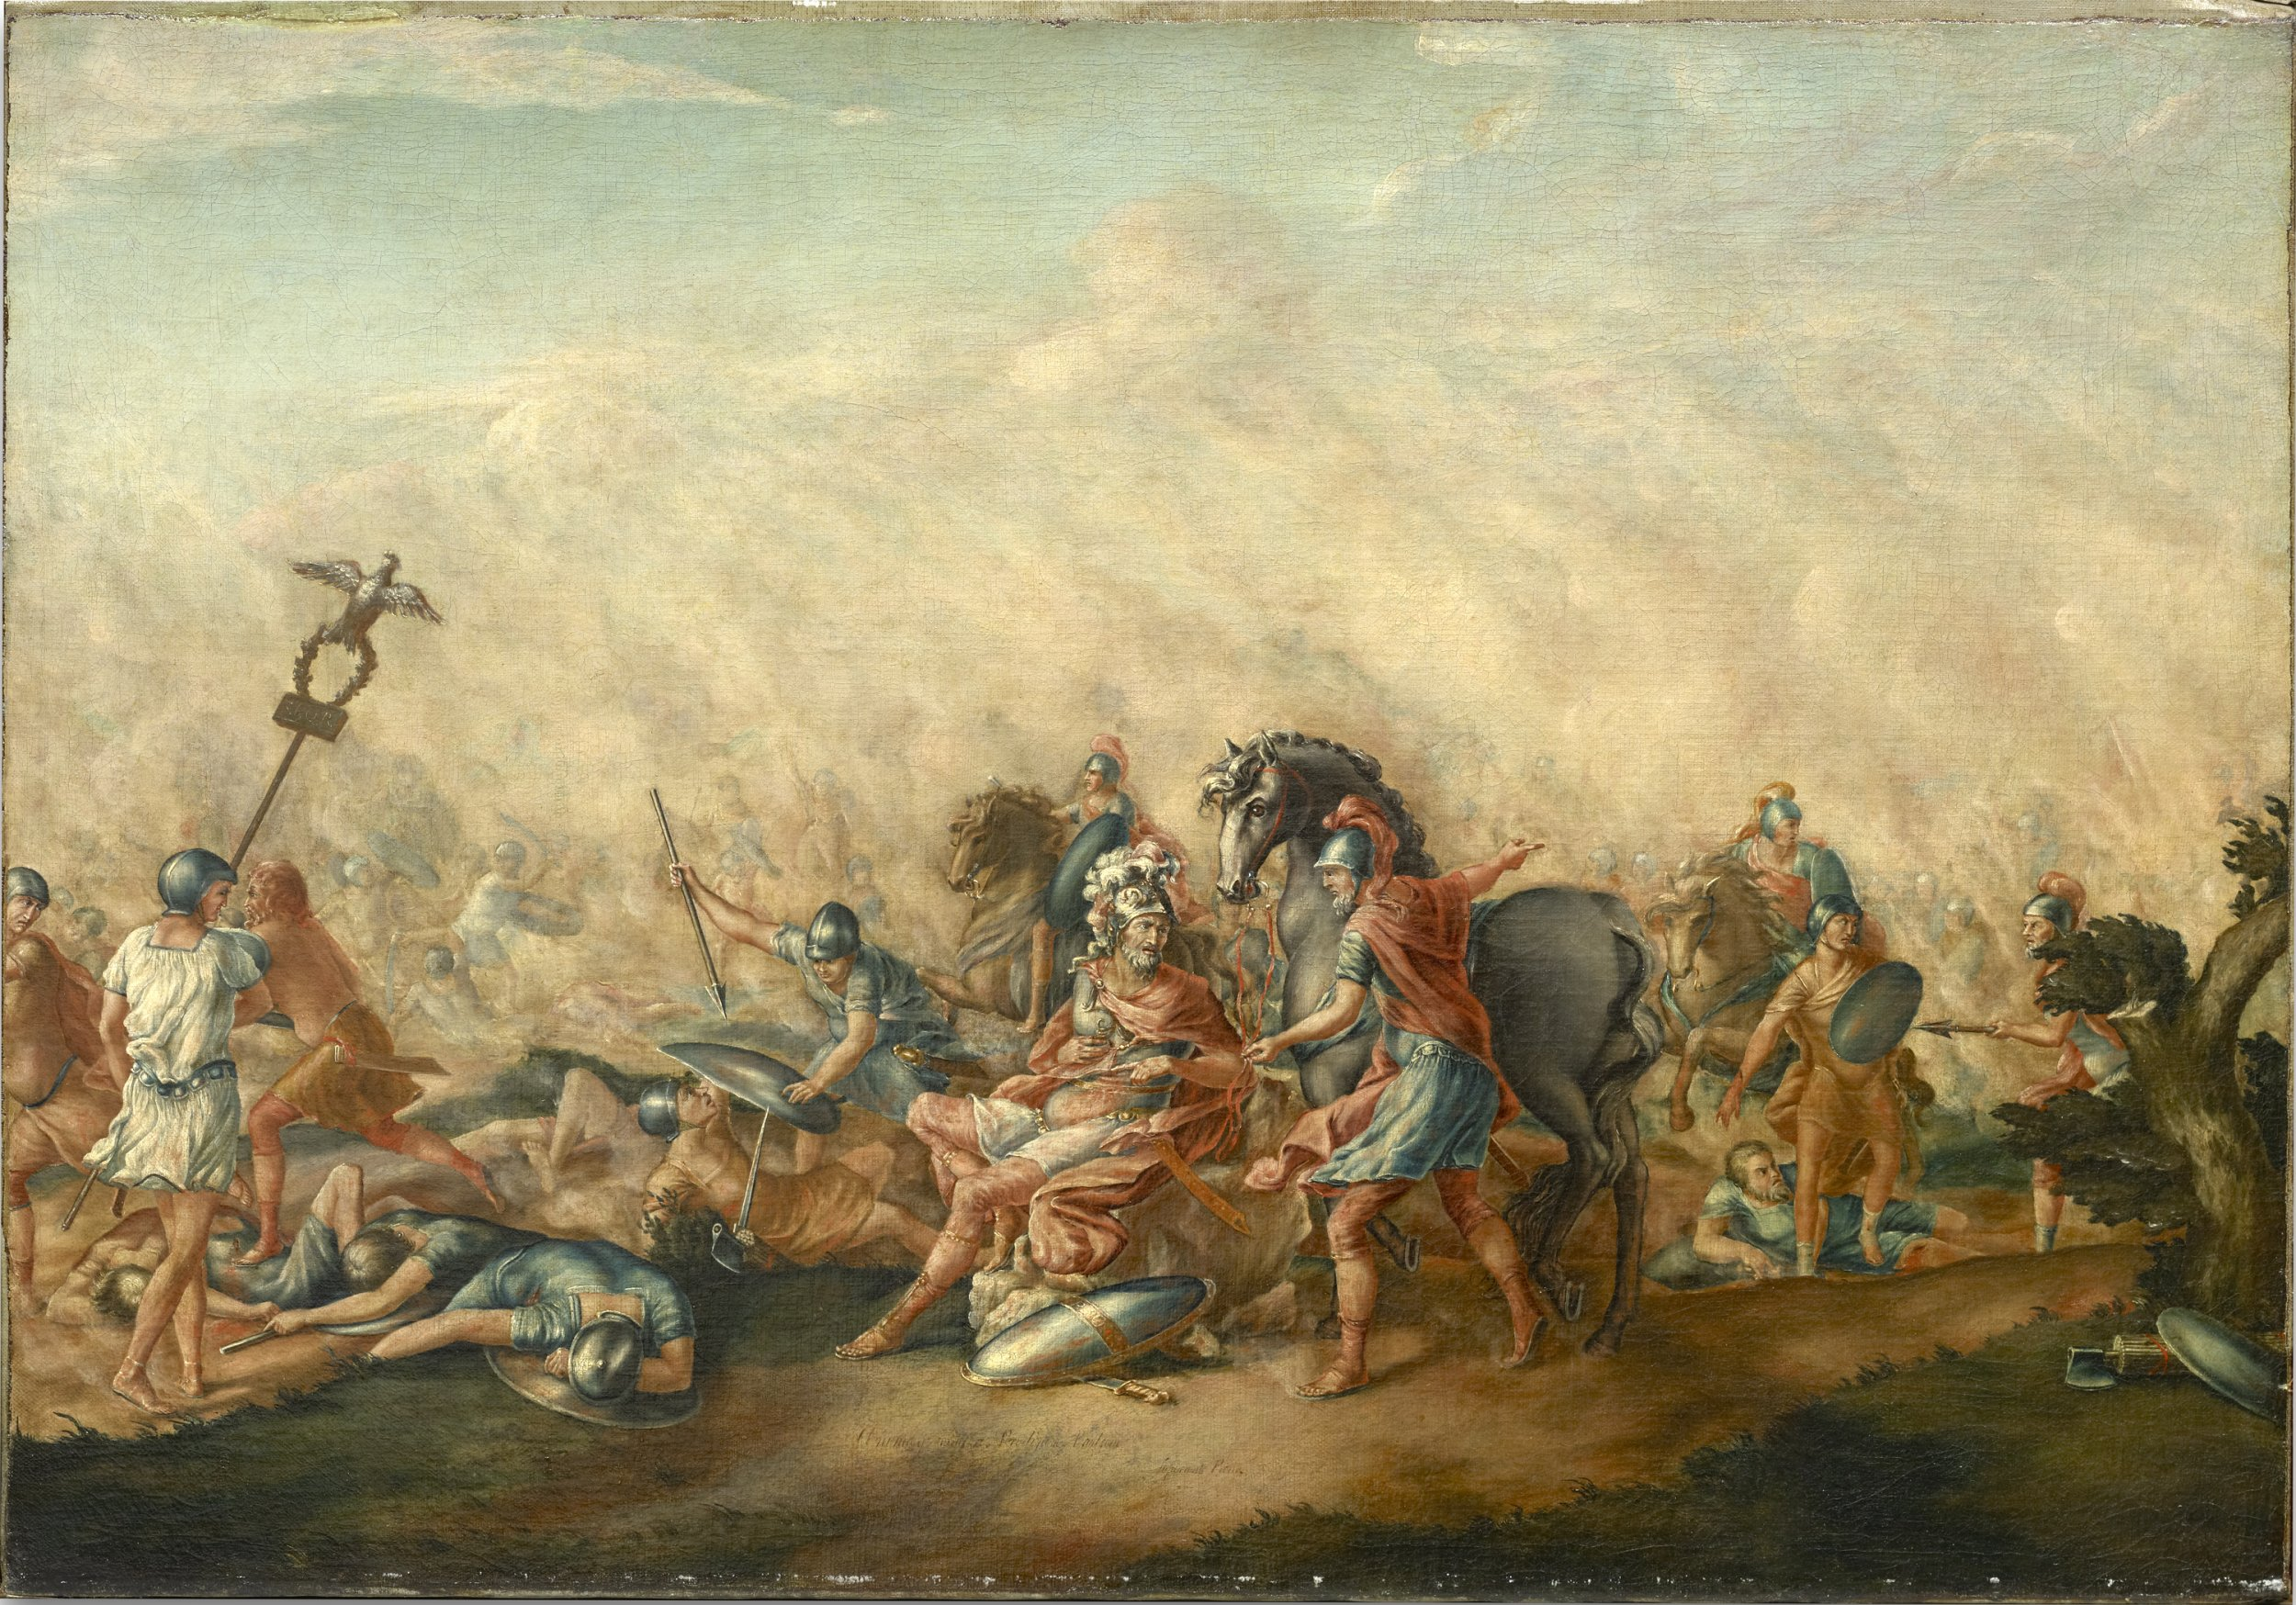 The Death of Paulus Aemilius at the Battle of Cannae